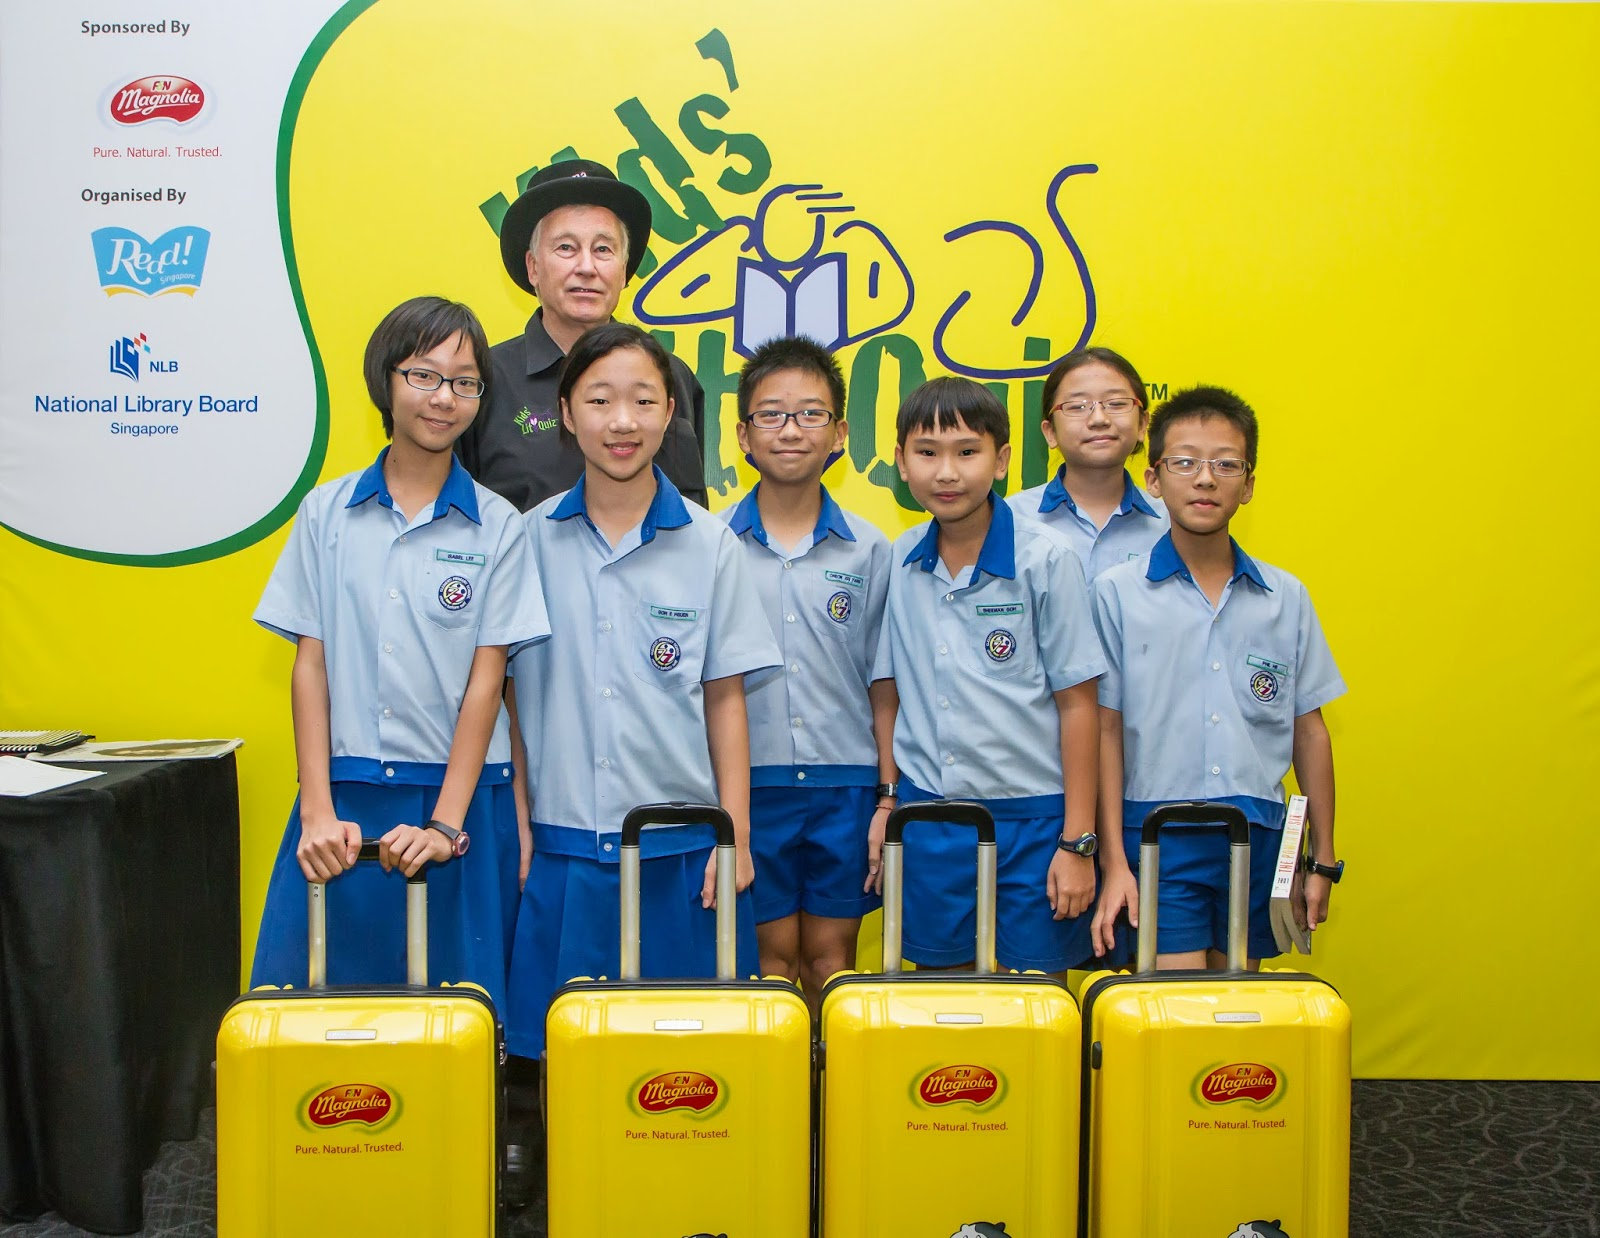 australian school uniform singapore